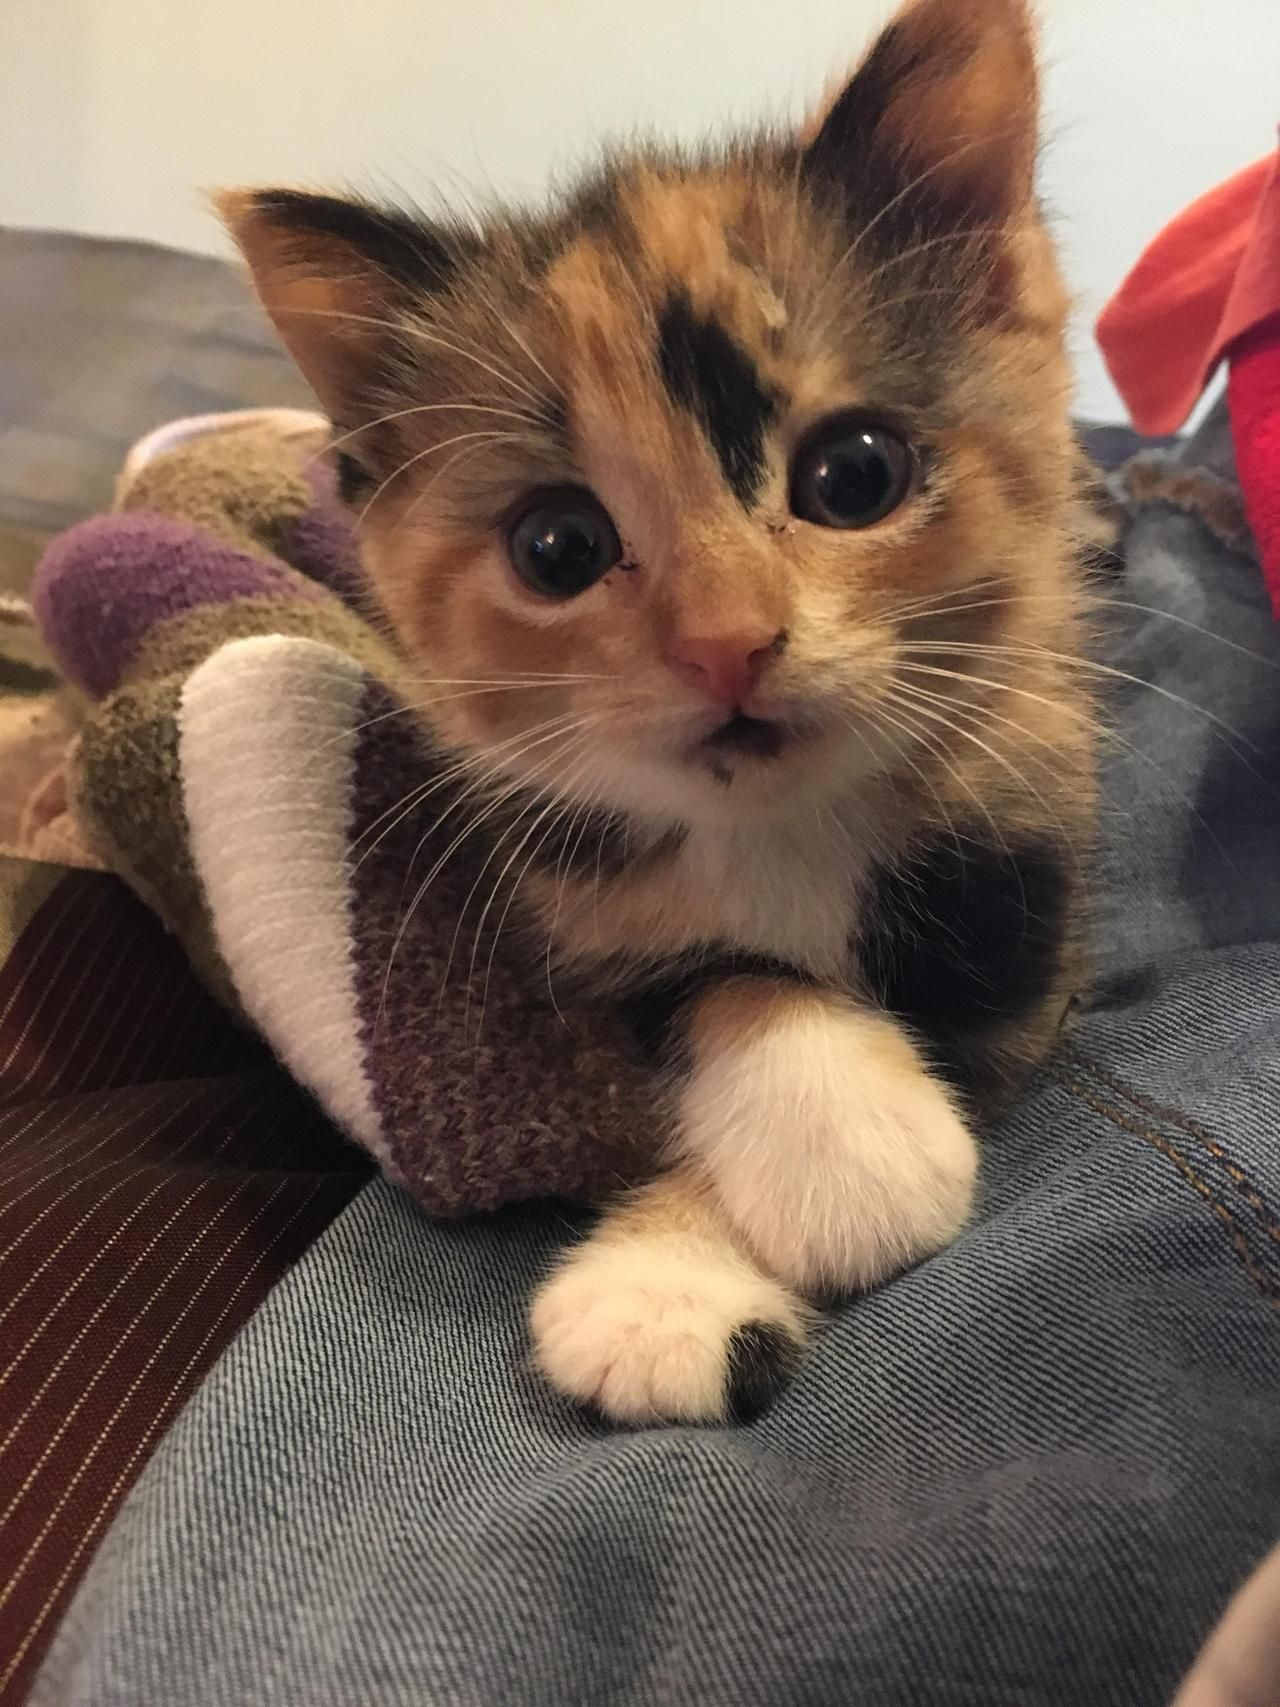 Found This Baby In A Gutter At 3 Weeks Old Still Cant Decide What To Name Her What Do You Guys Think By Iatethecheesest Cute Cats Cats Cute Cats And Kittens